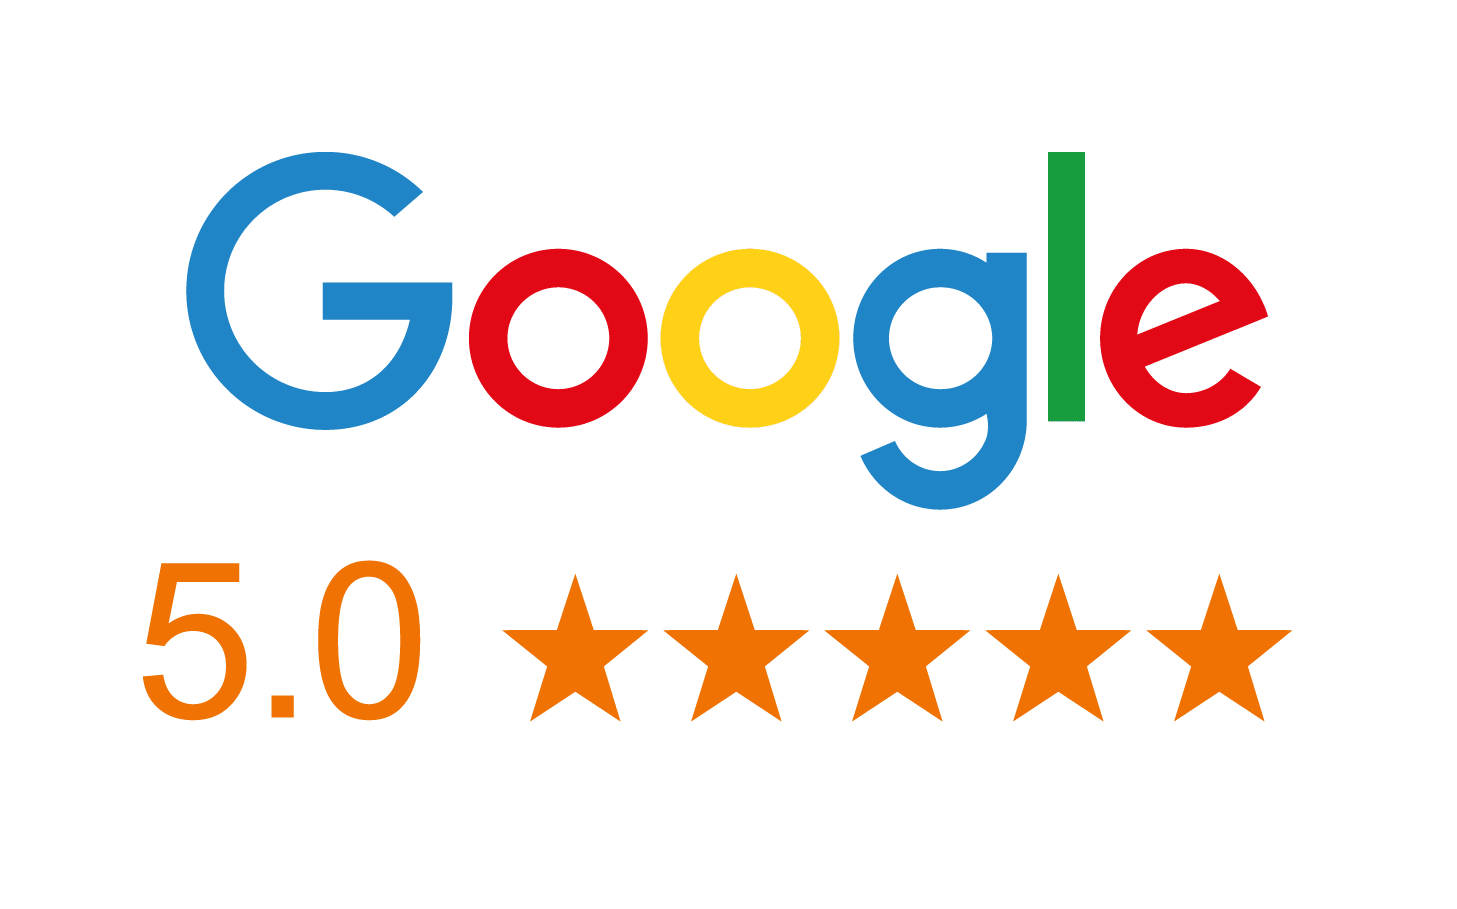 Google-Rating-5-star-1.png